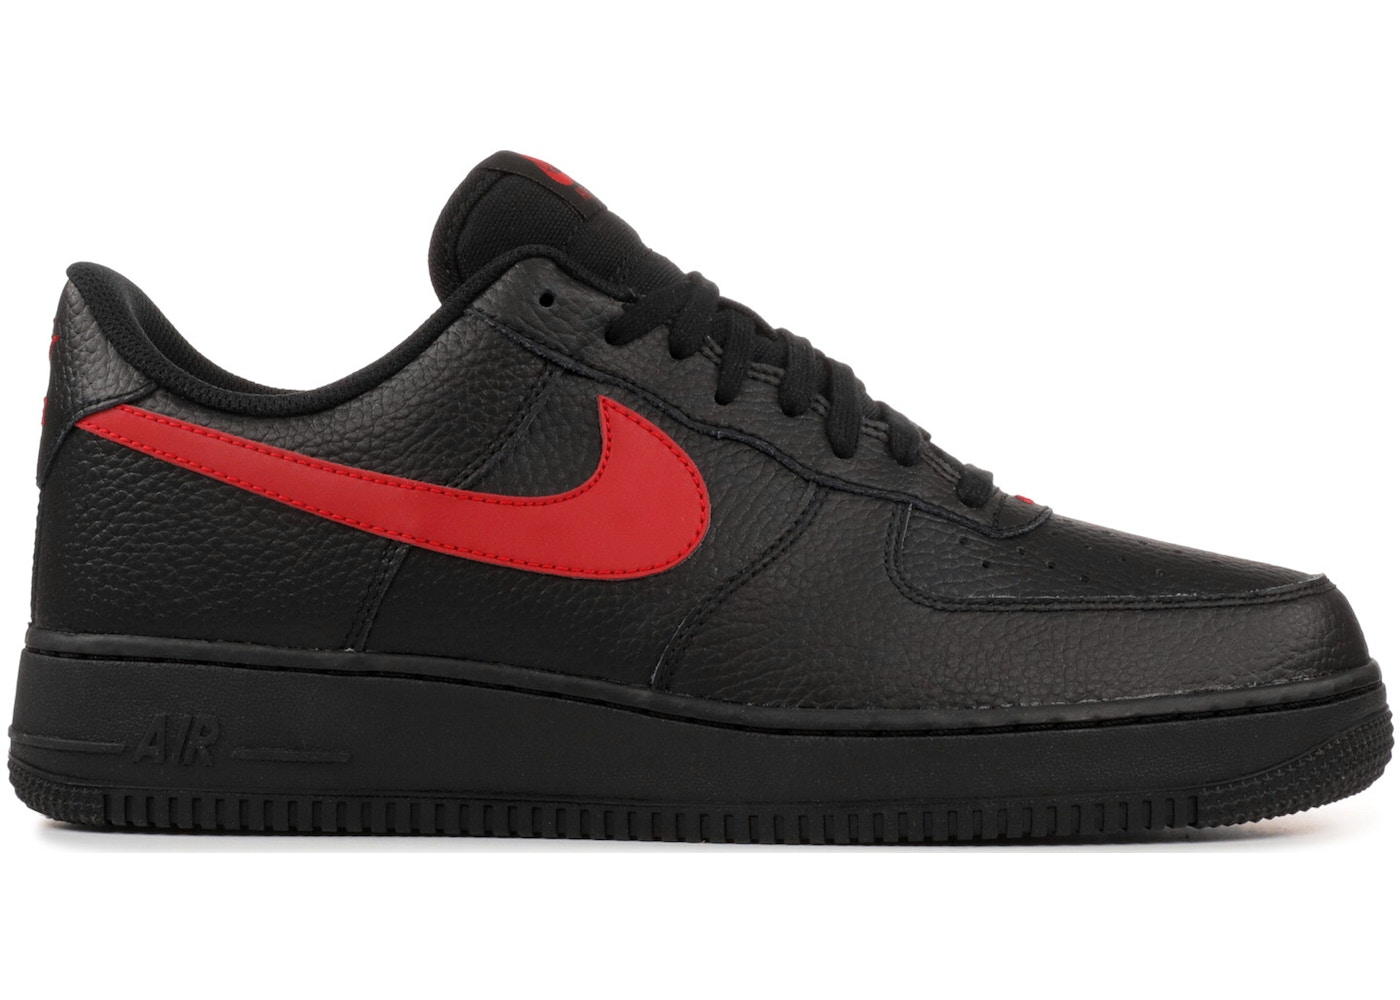 los angeles 3e2a6 a1d7e Air Force 1 Low Black University Red - AA4083-011